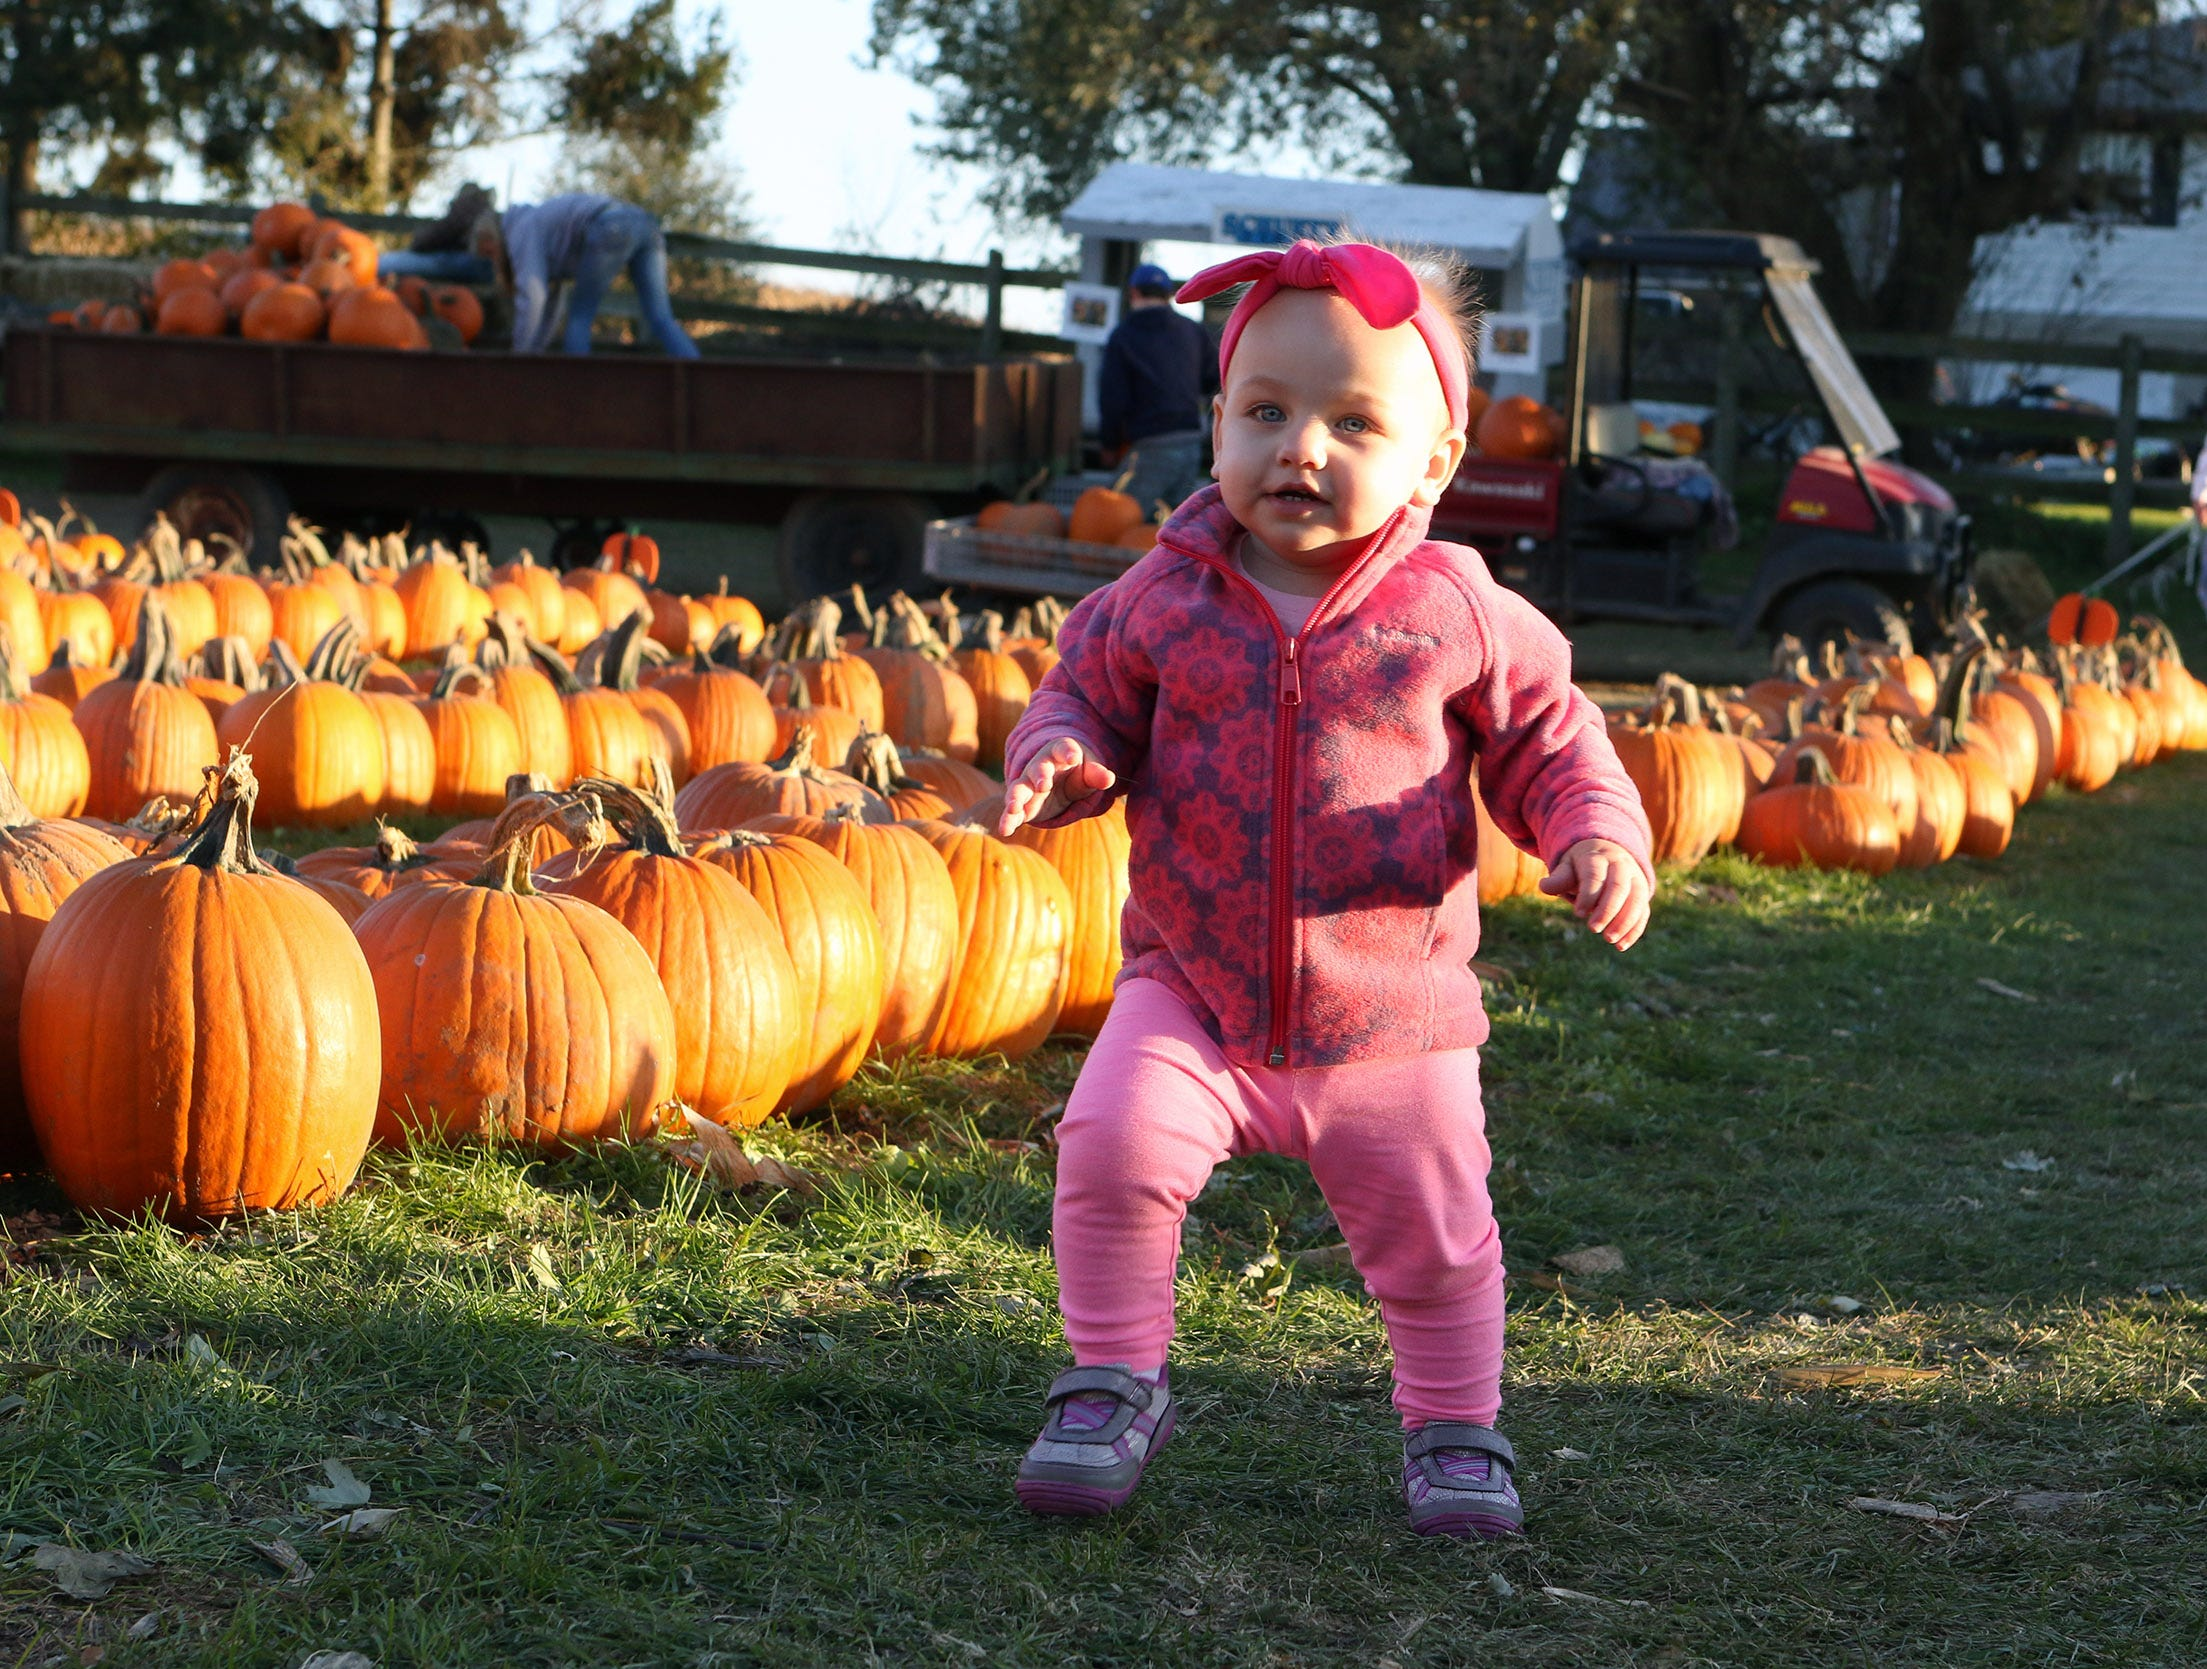 Naomi Boldt, 1, of Waukesha, makes a run for it between rows of pumpkins at Schuett Farms in Mukwonago on Oct. 22.